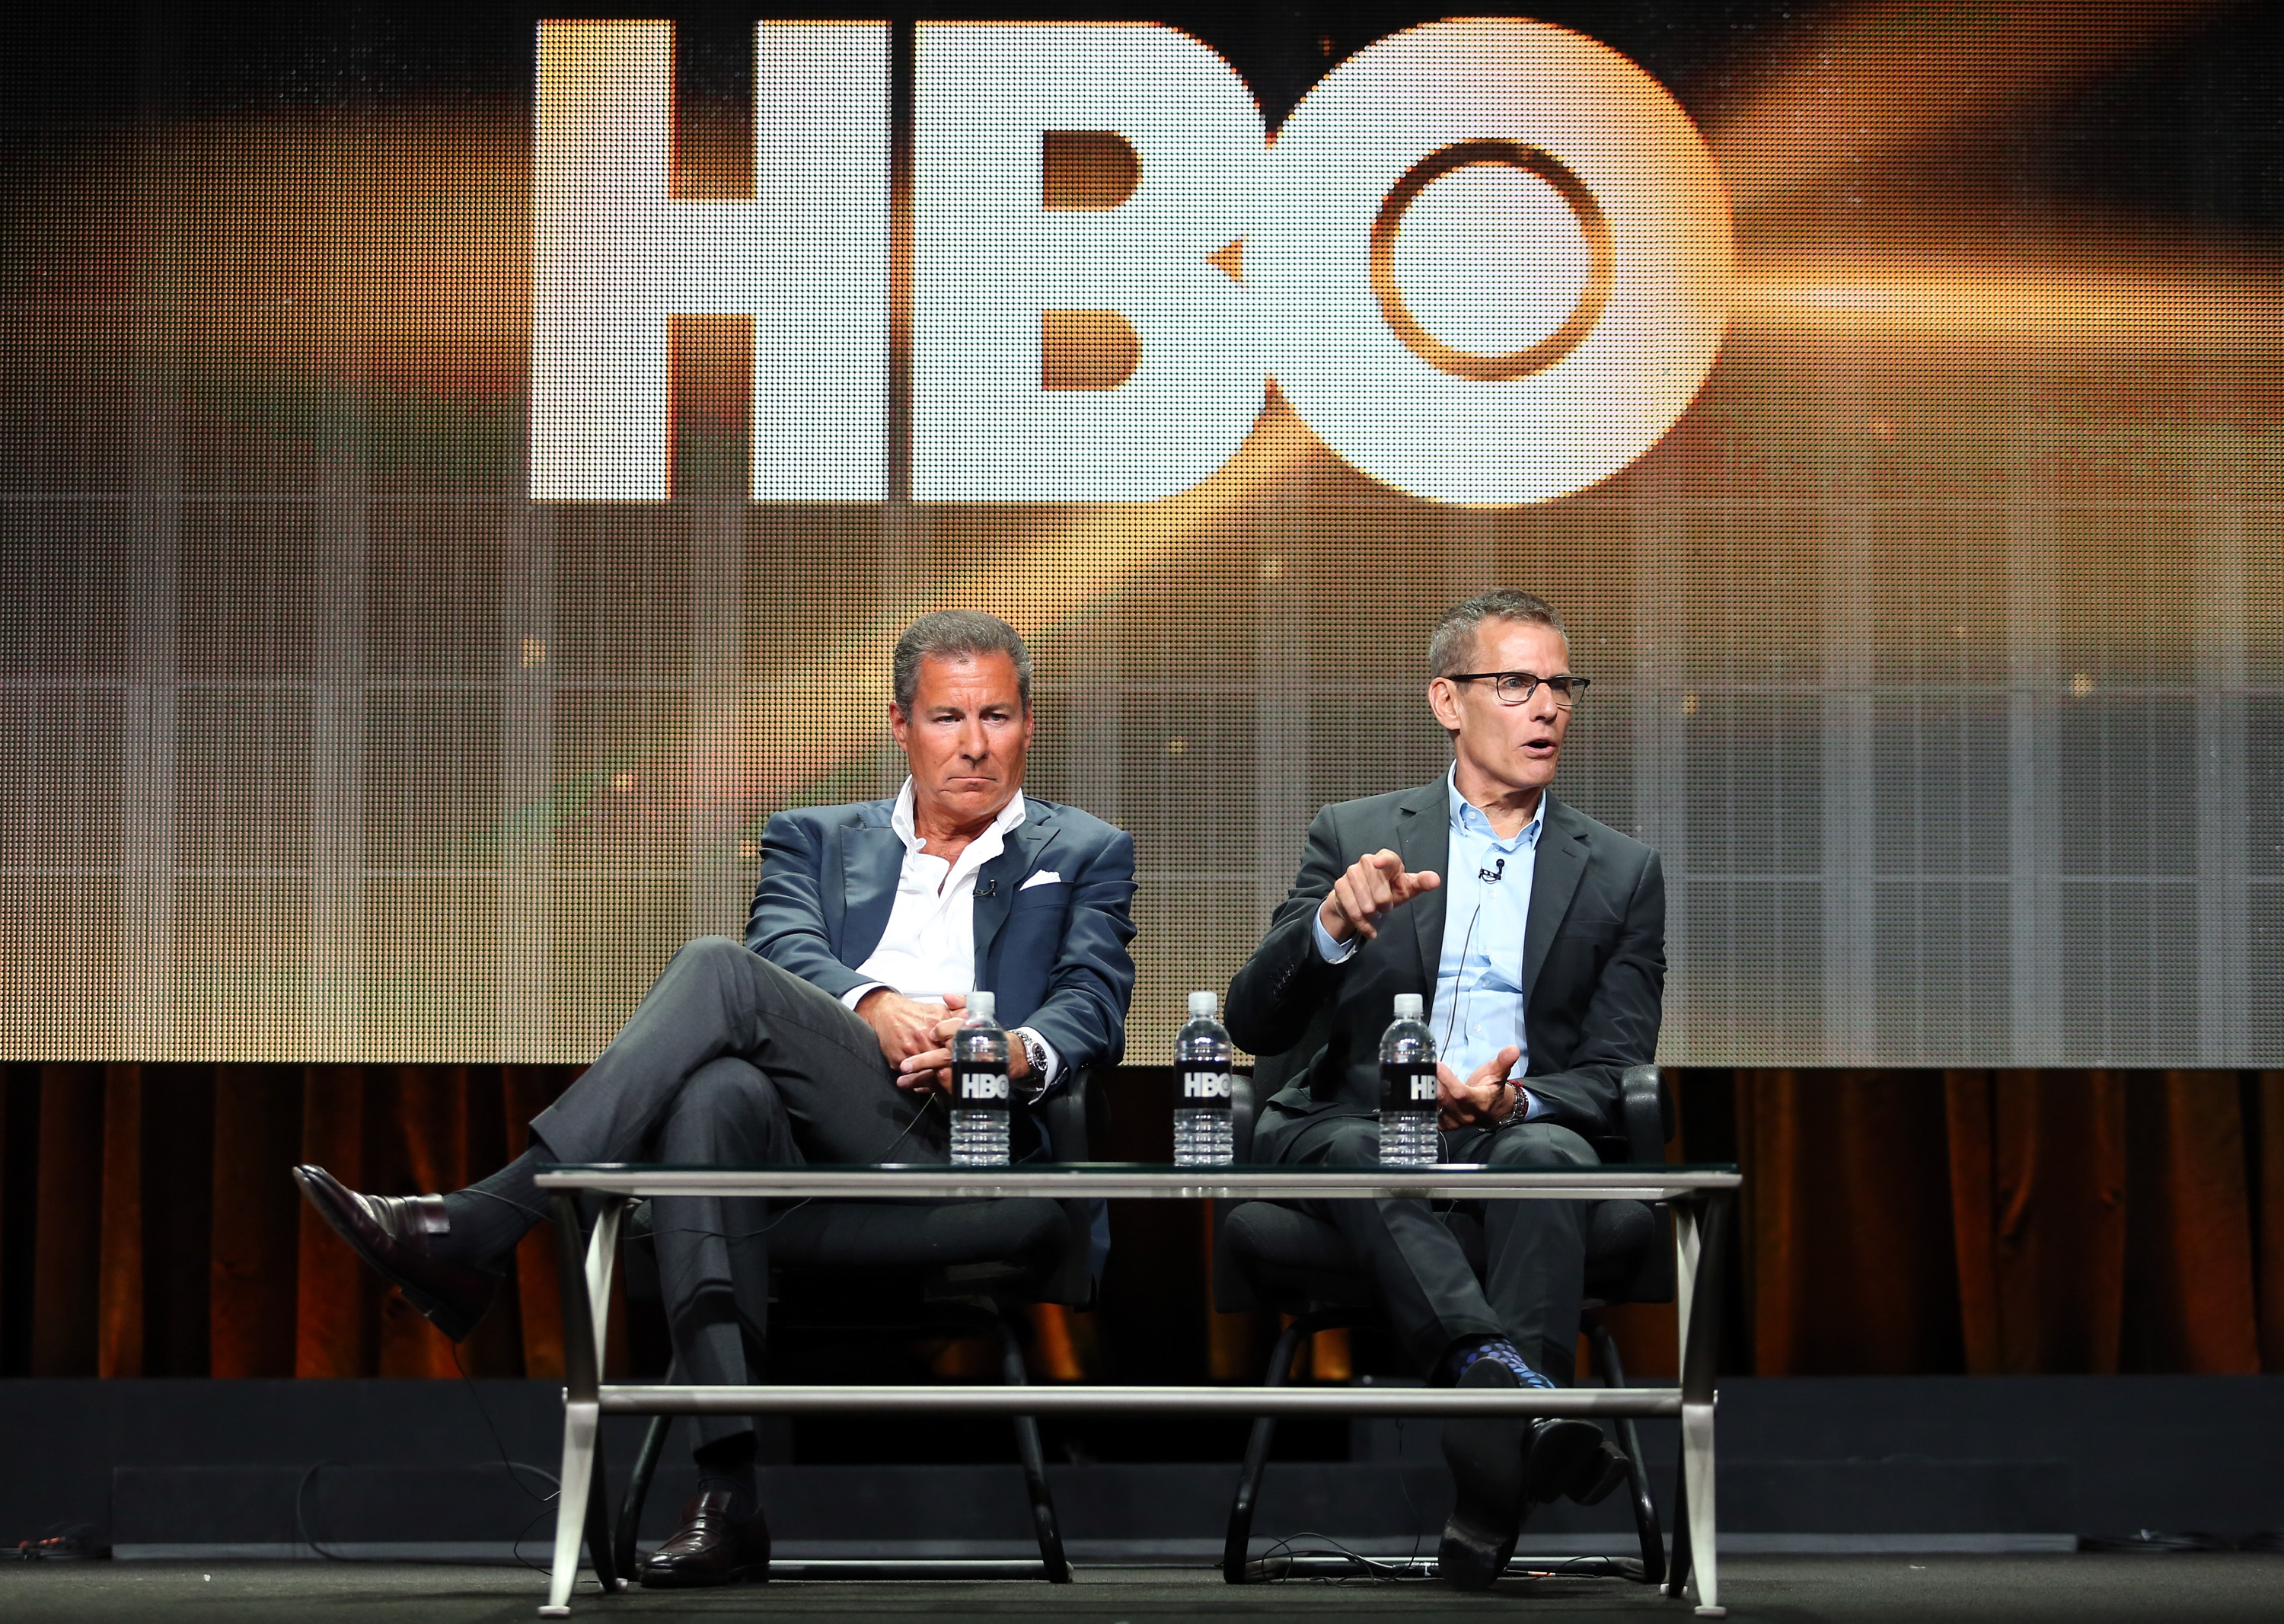 HBO Chairman and CEO Richard Plepler and HBO Programming President Michael Lombardo speak onstage at the Executive Session panel during the HBO portion of the 2014 Summer Television Critics Association on July 10, 2014 in Beverly Hills.